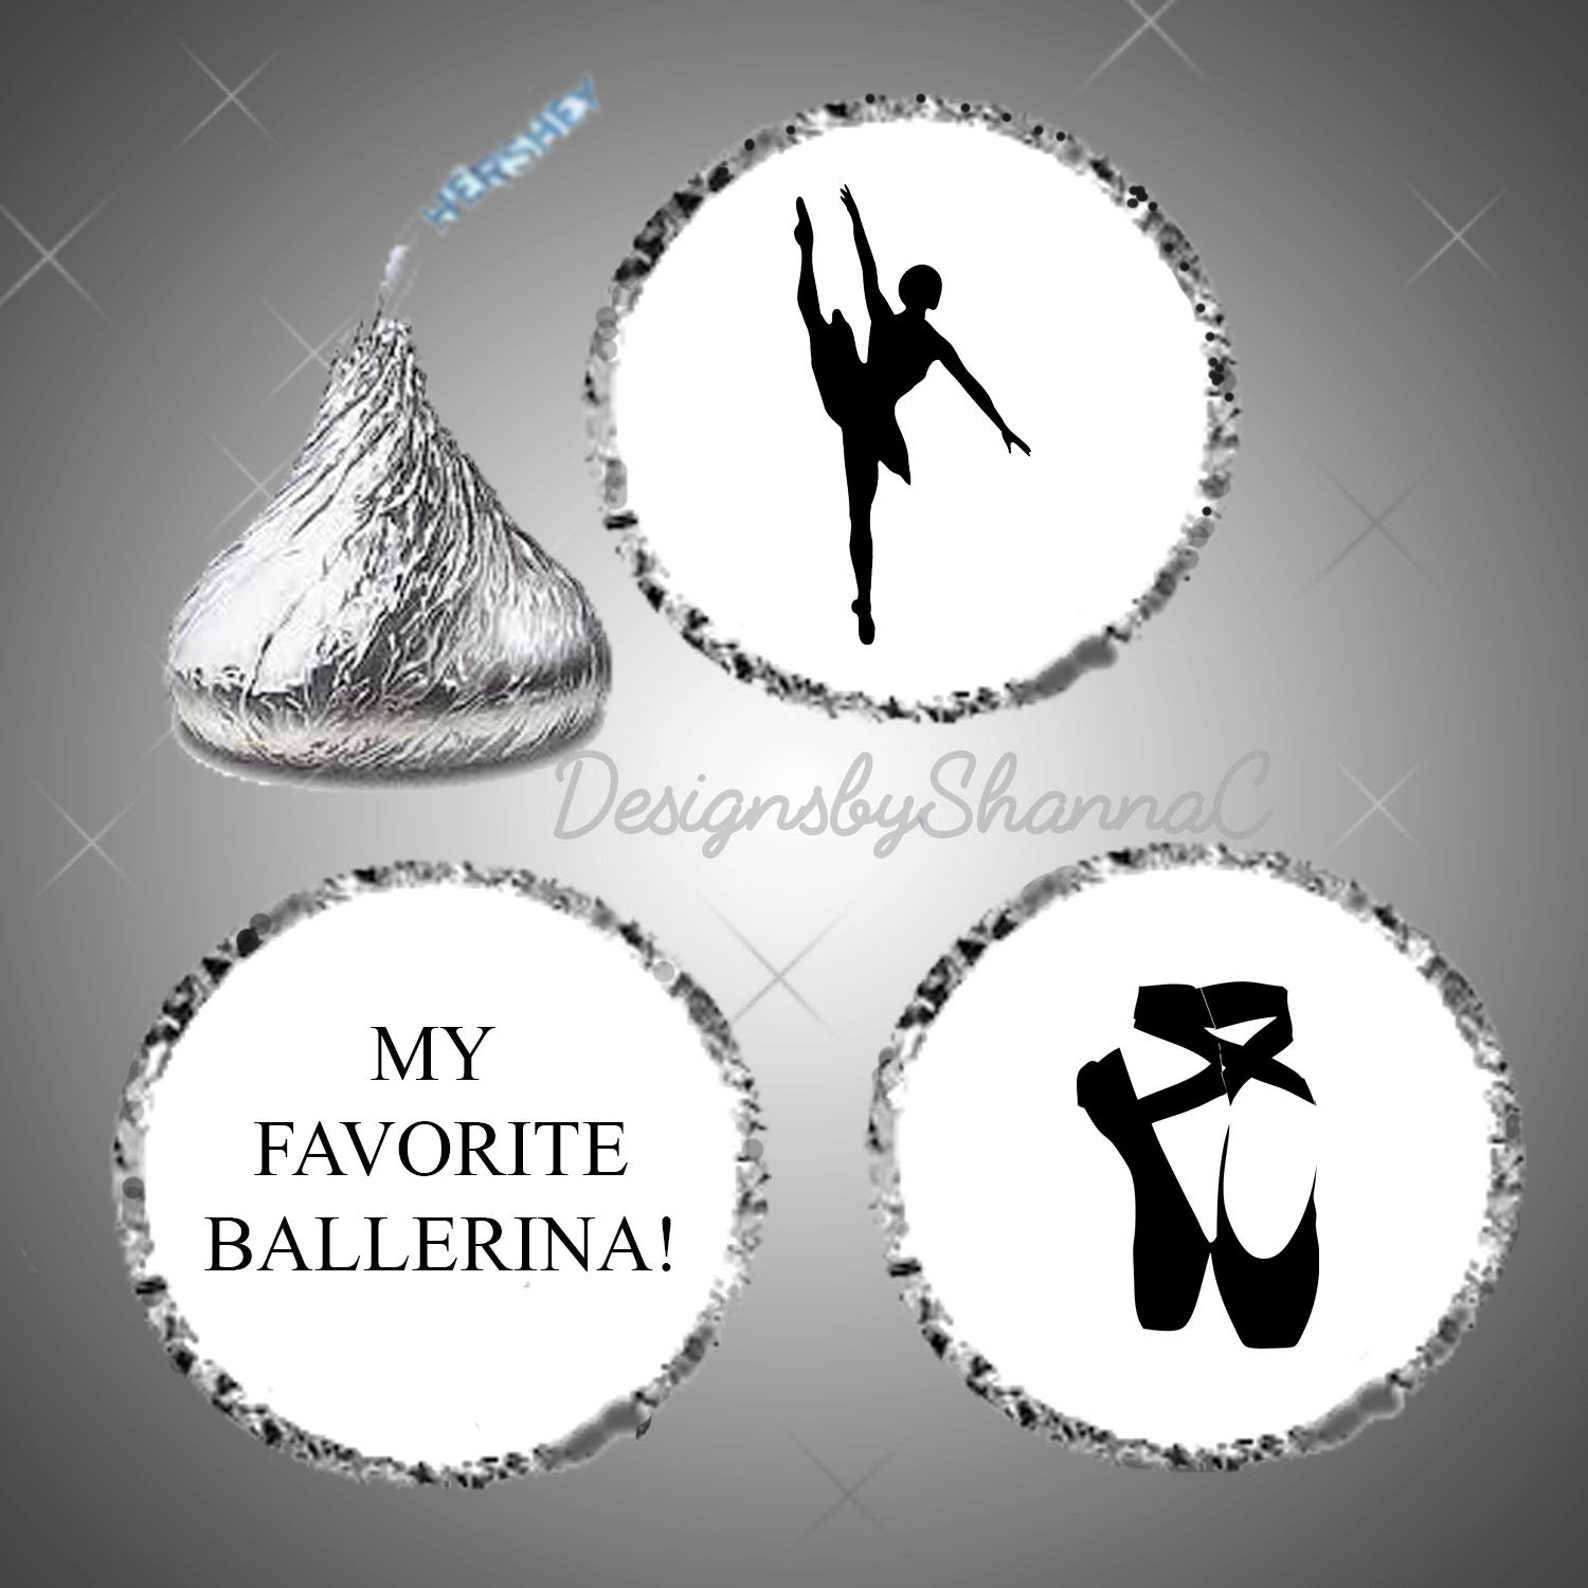 custom digital ballerina sticker labels fit hershey kiss, birthday party, celebration, ballet achievement gift, kids adults, fav